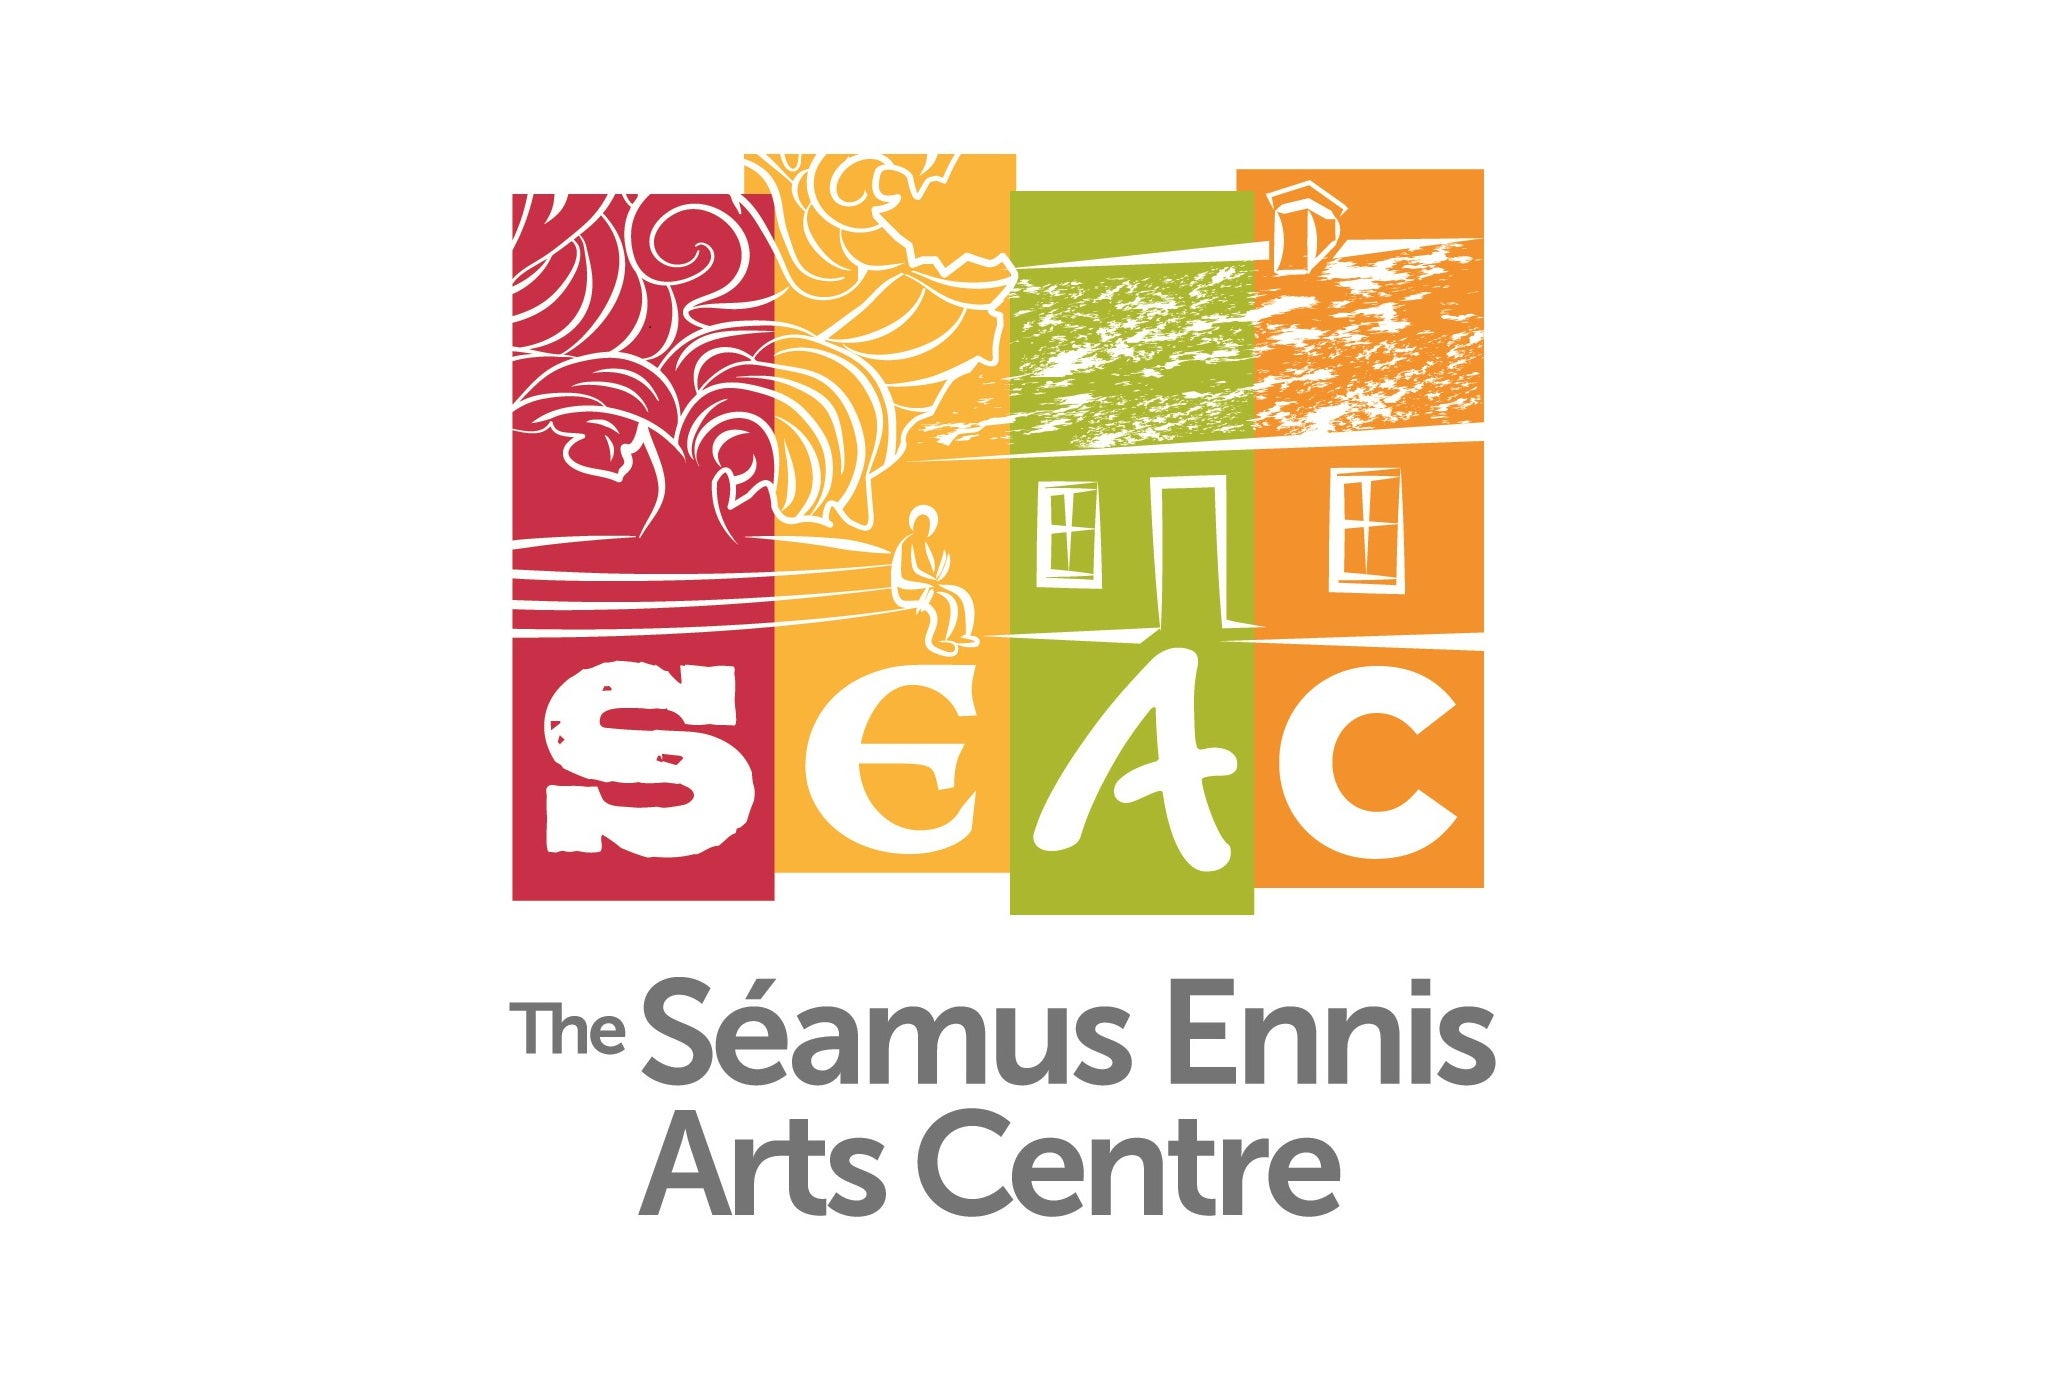 The Seamus Ennis Arts Centre